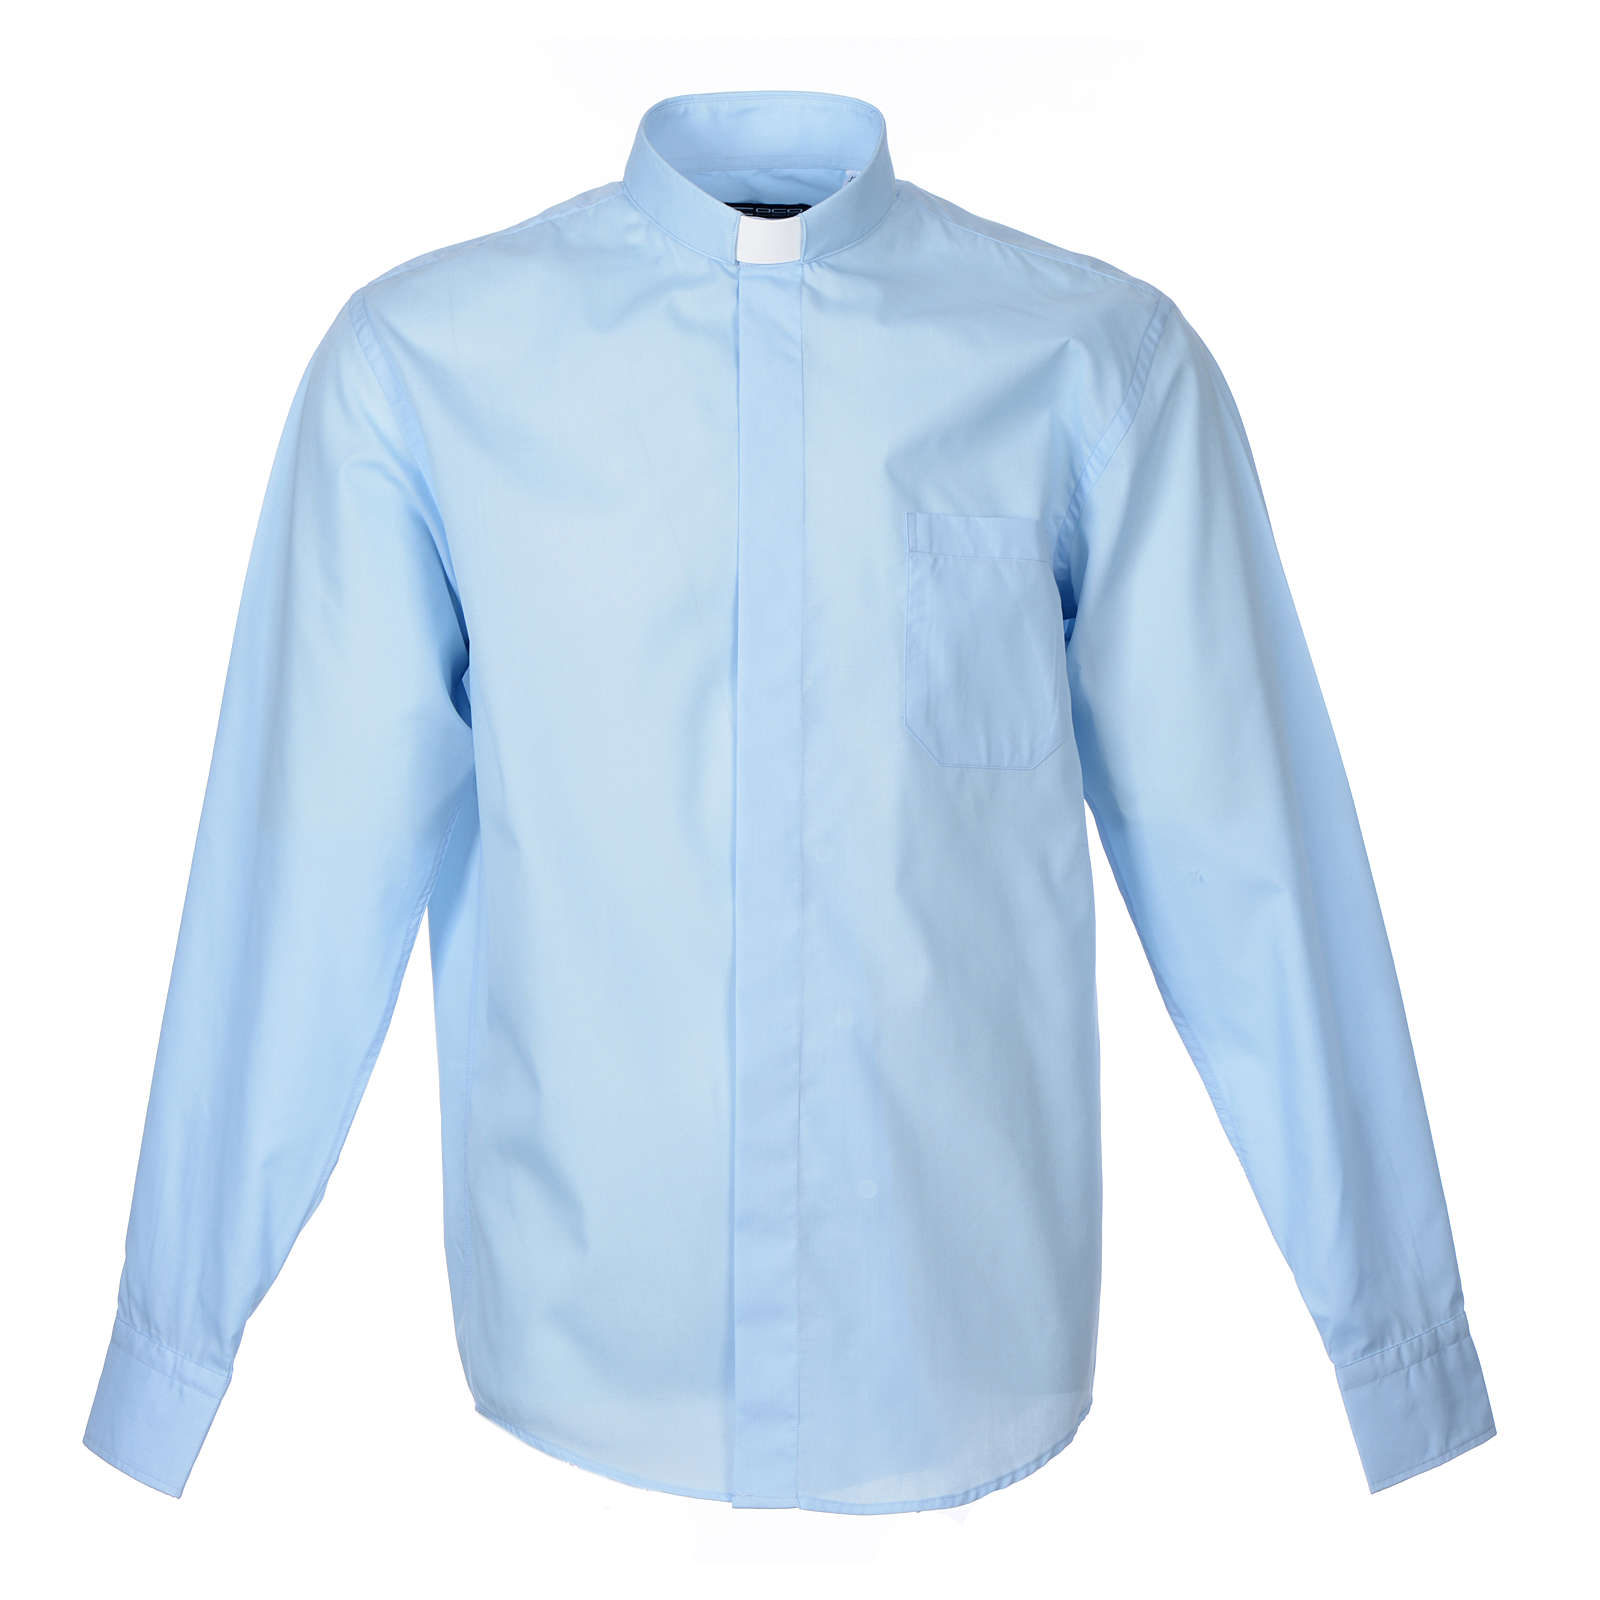 Camisa Clergy Manga Larga Color Uniforme Mixto Algodón Celeste 4